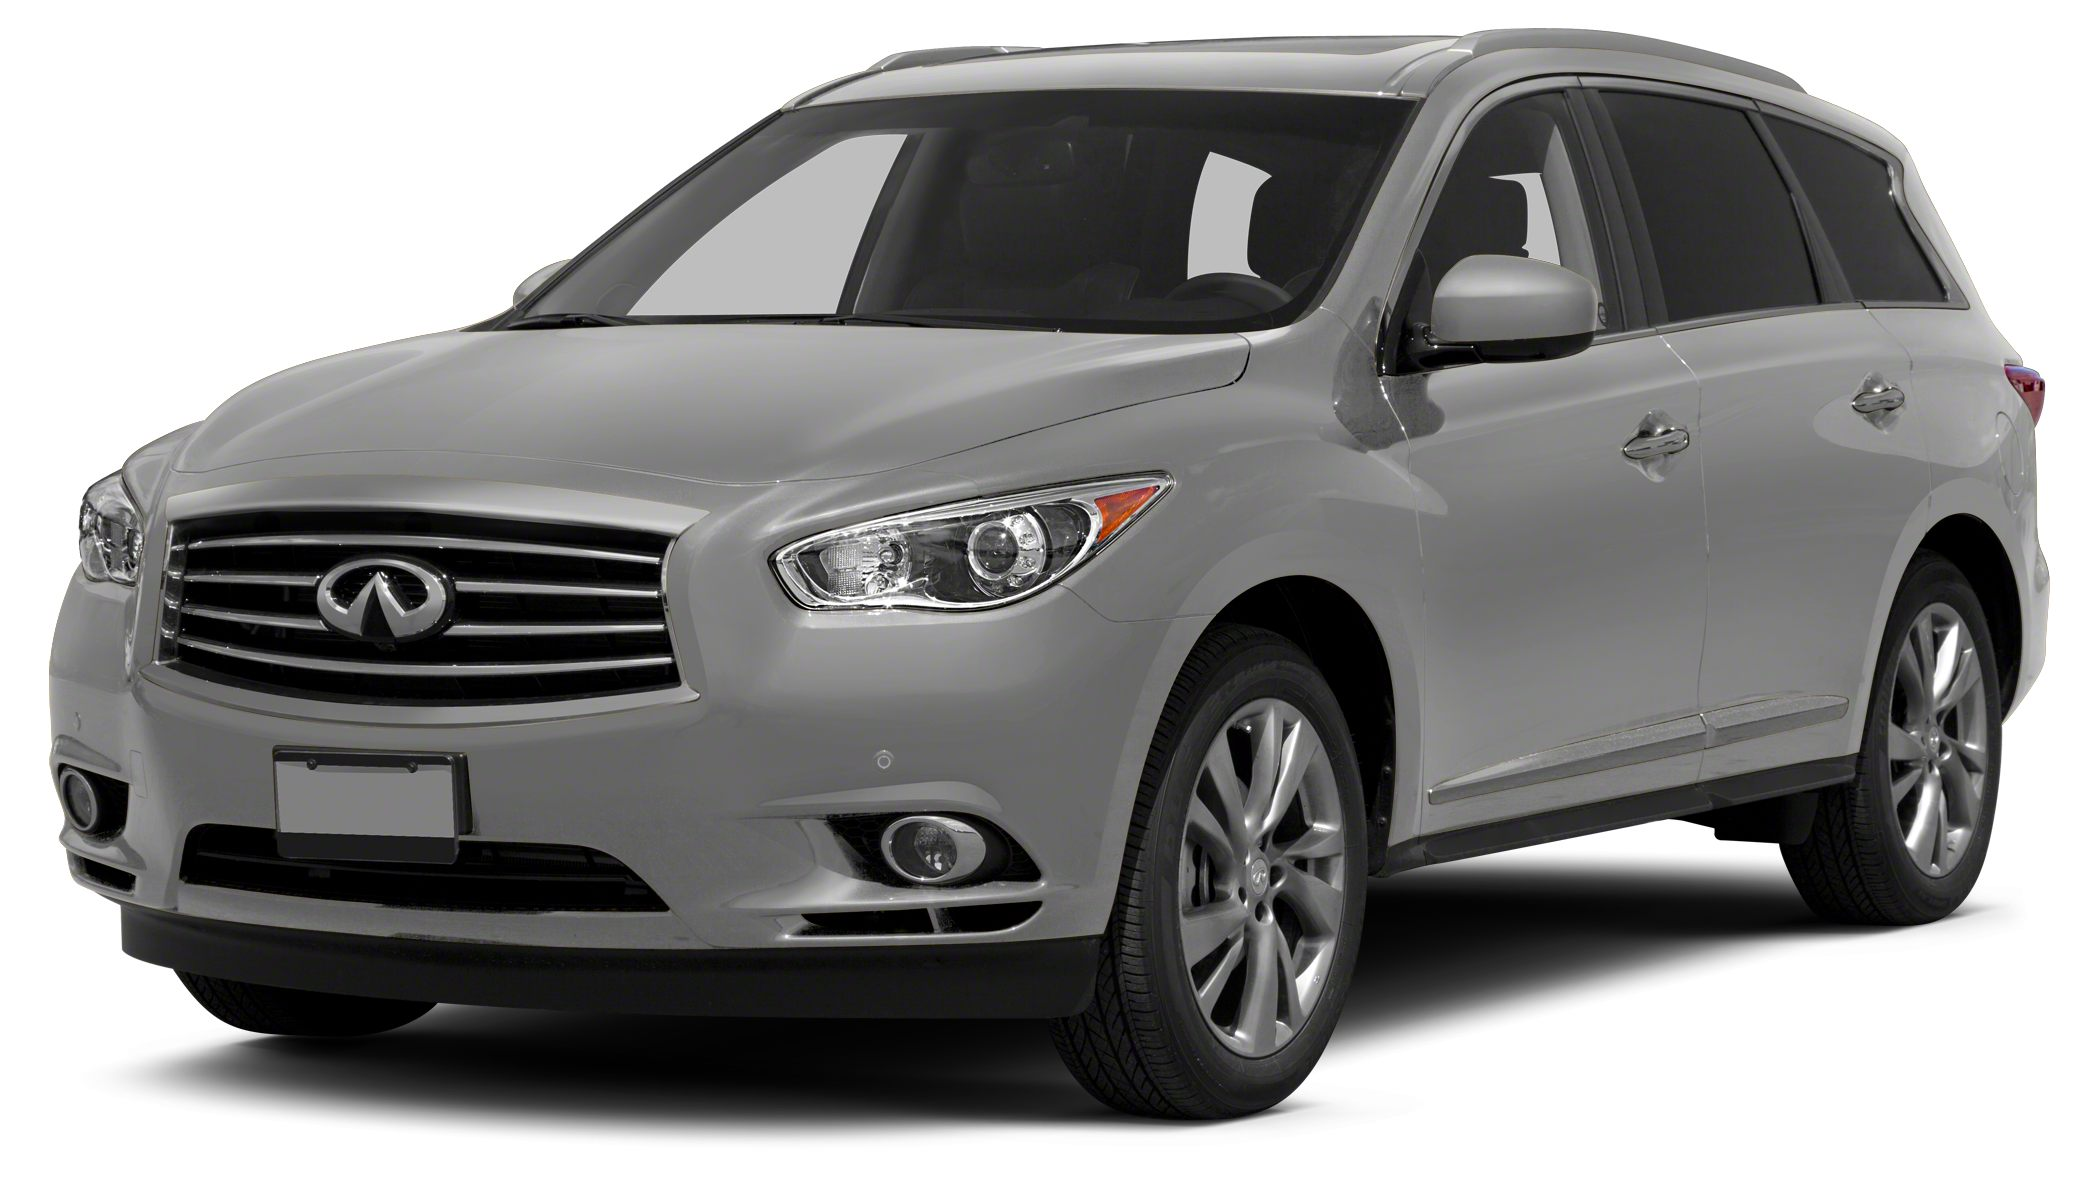 2013 Infiniti JX35 Base Snatch a deal on this 2013 Infiniti JX35 before its too late Roomy but e